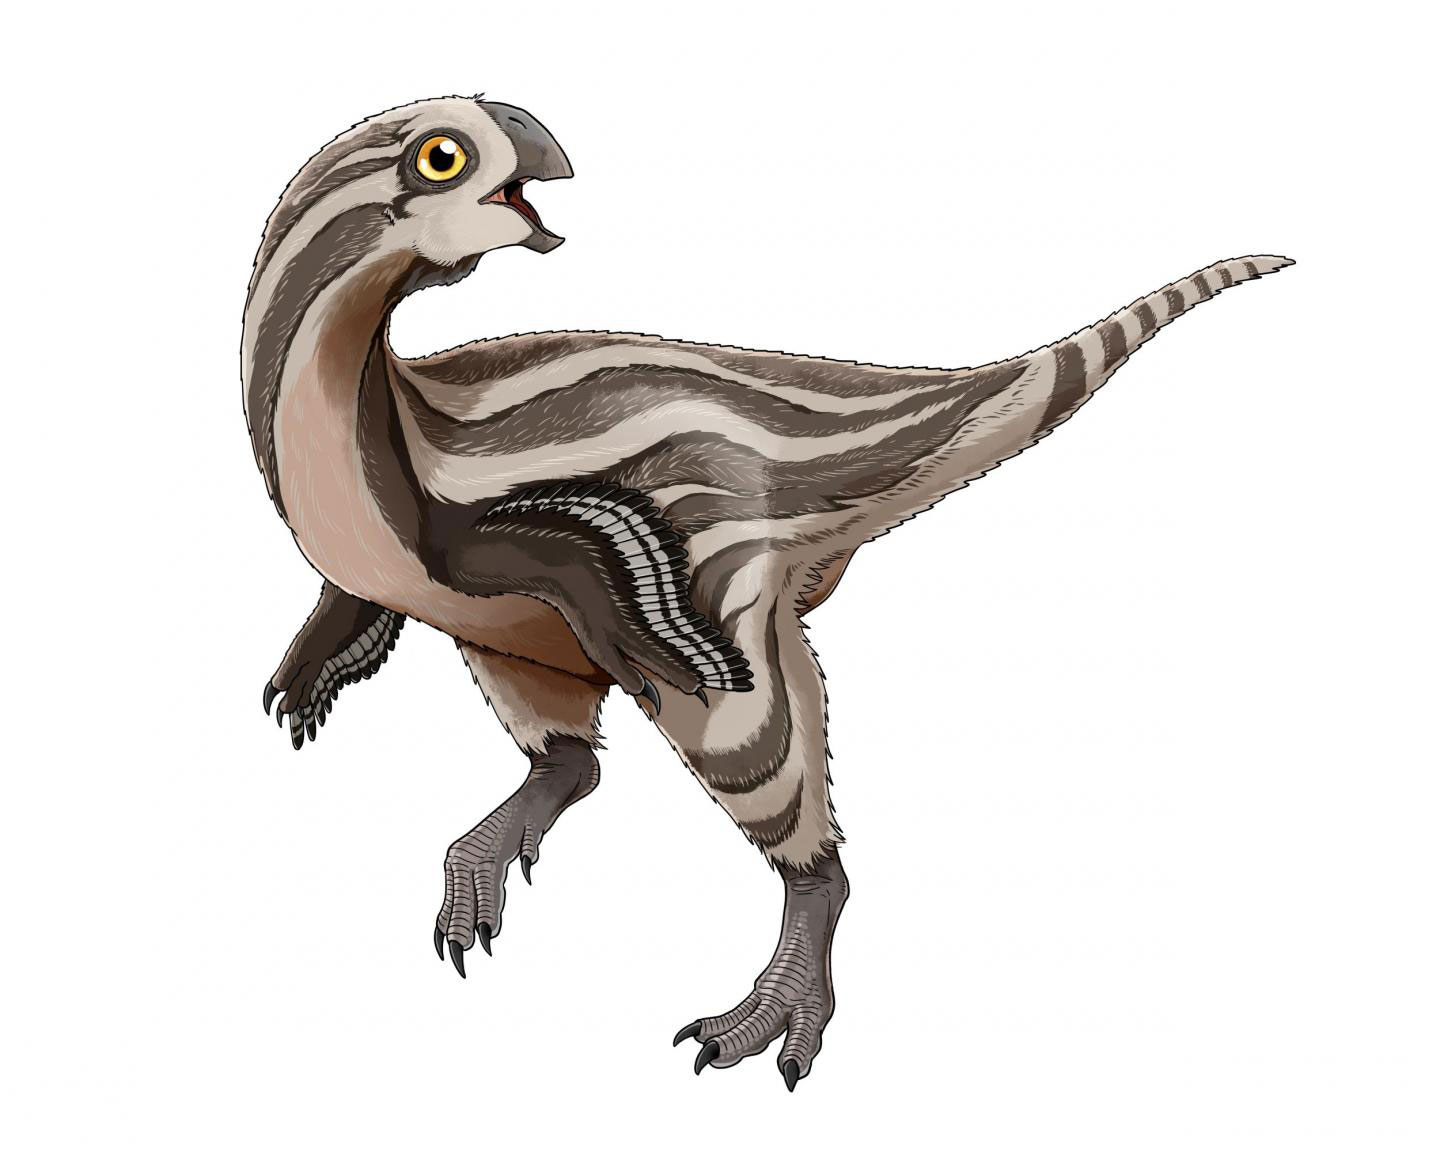 New Dinosaur Discovery 2019 New Dinosaur Species Discovered in Mongolia, Gobiraptor Minutus